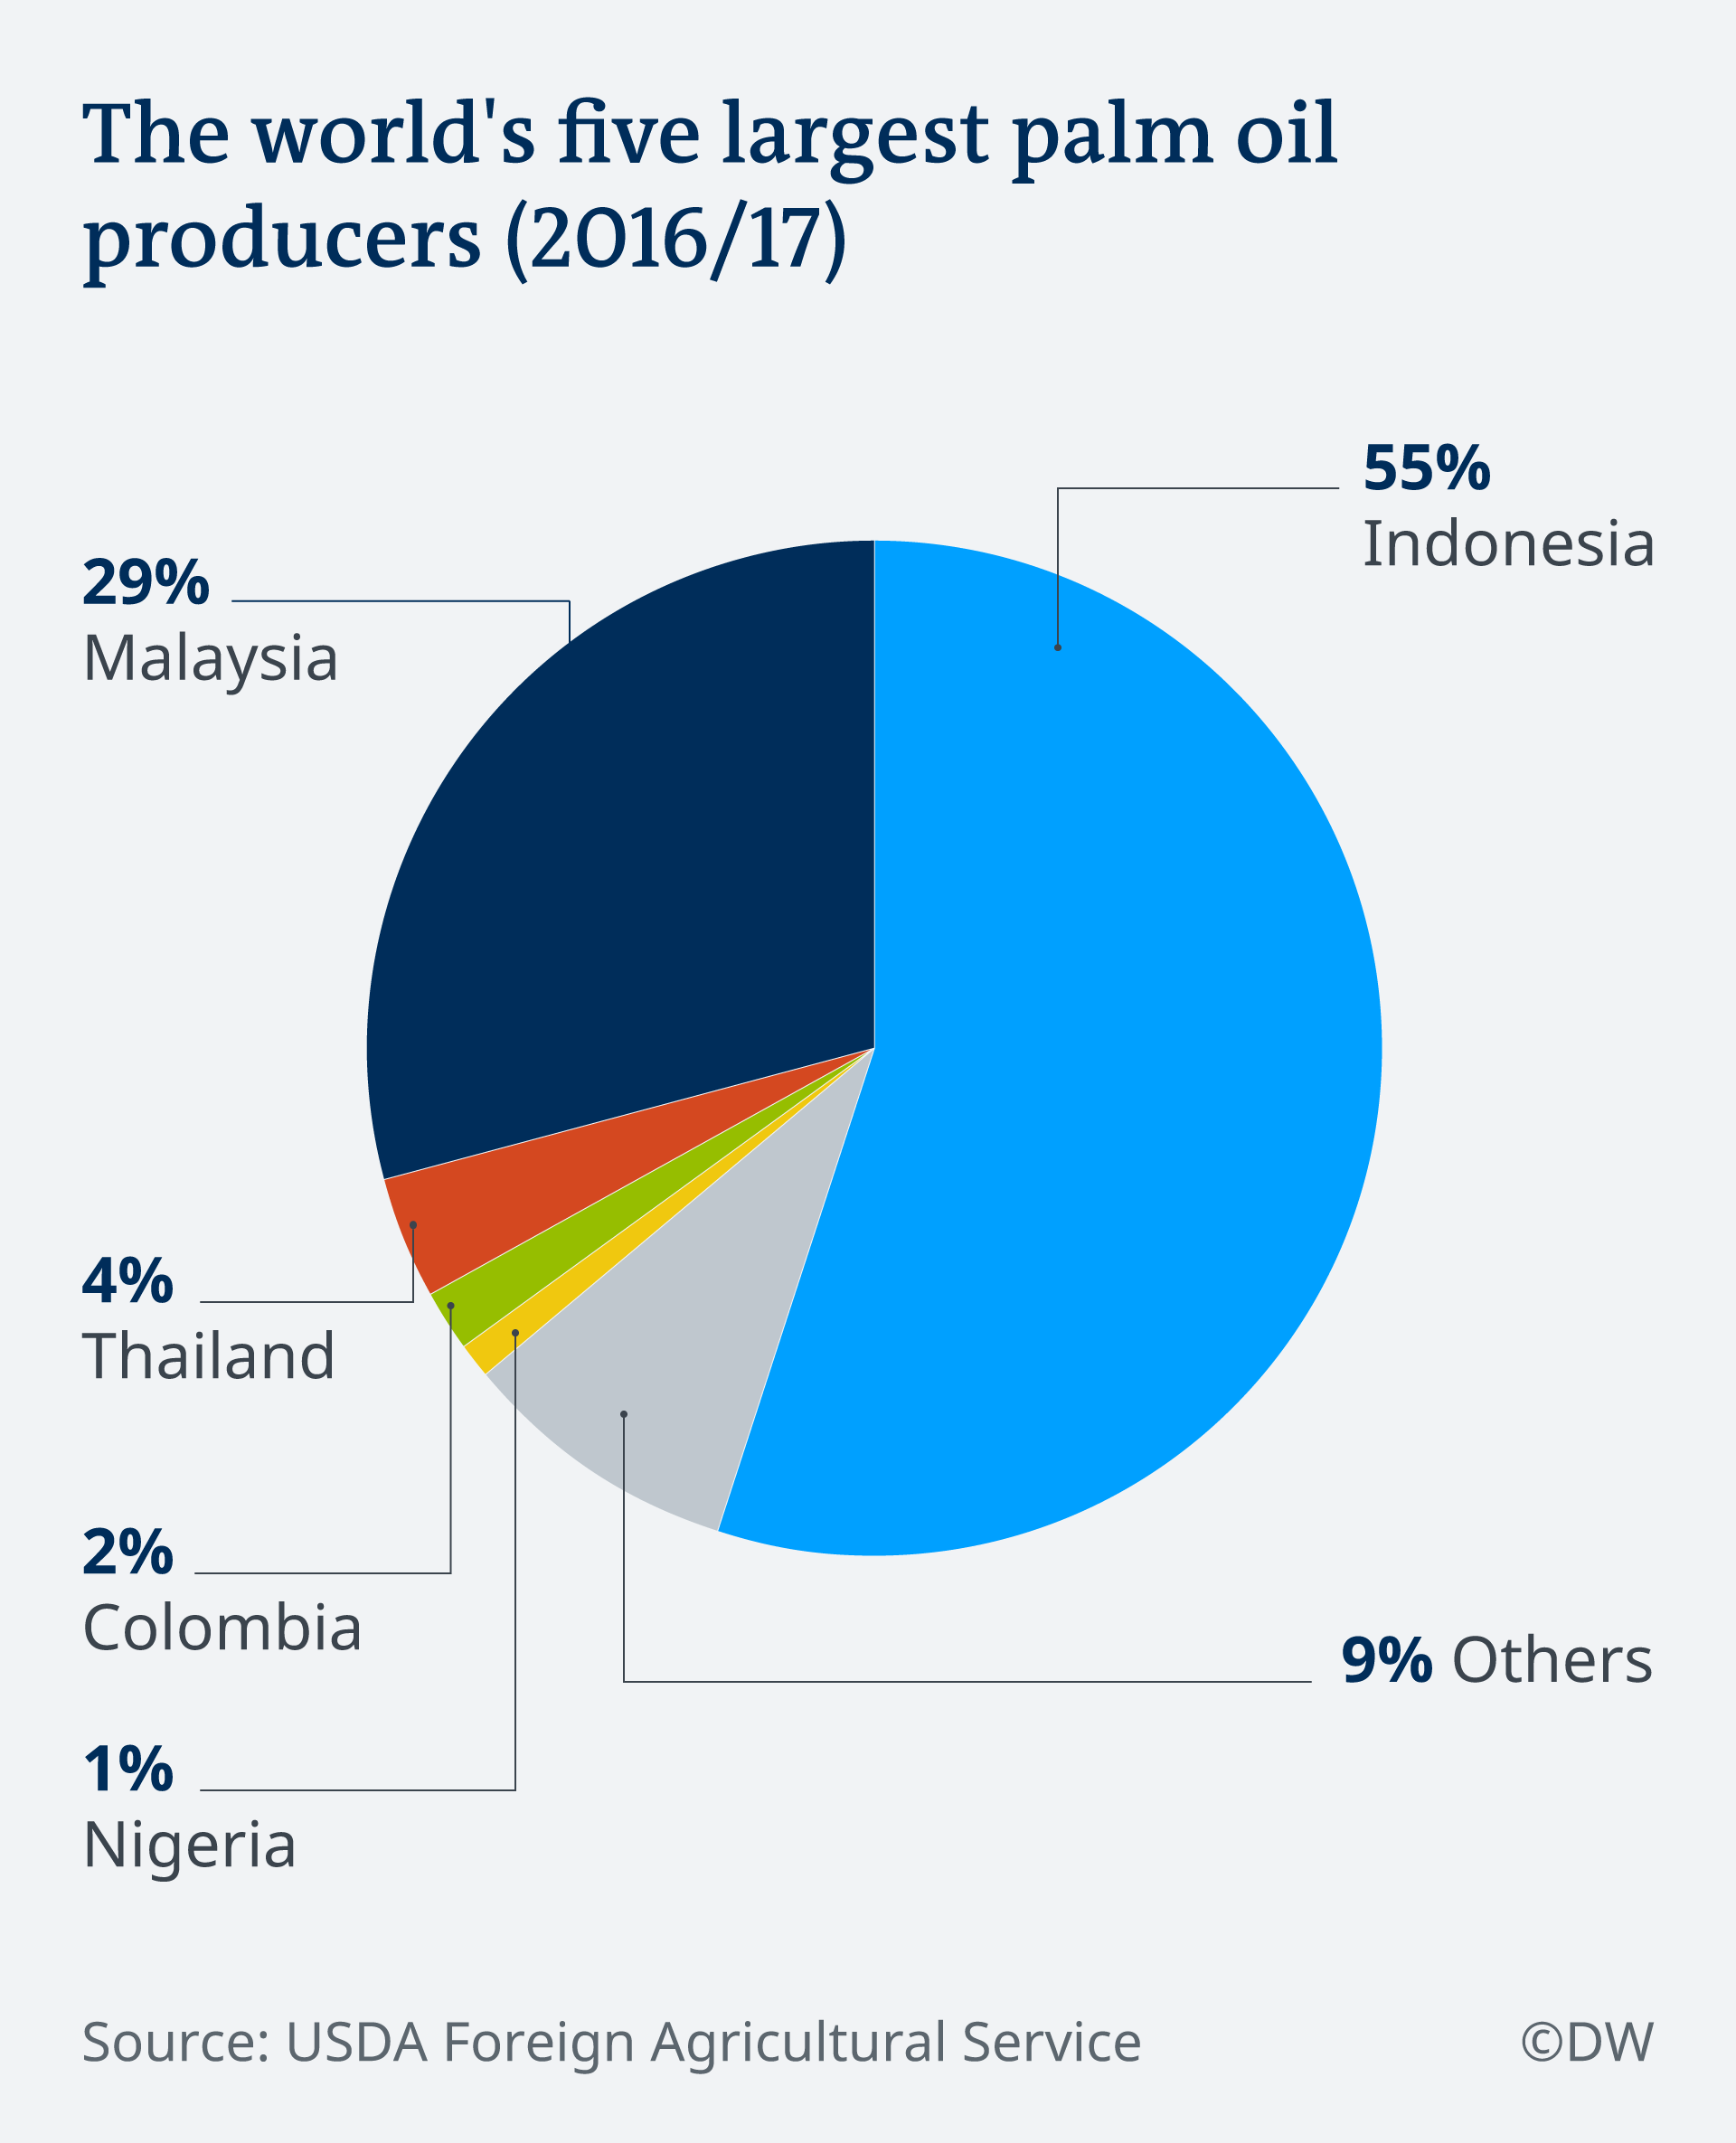 The world's largest palm oil producers